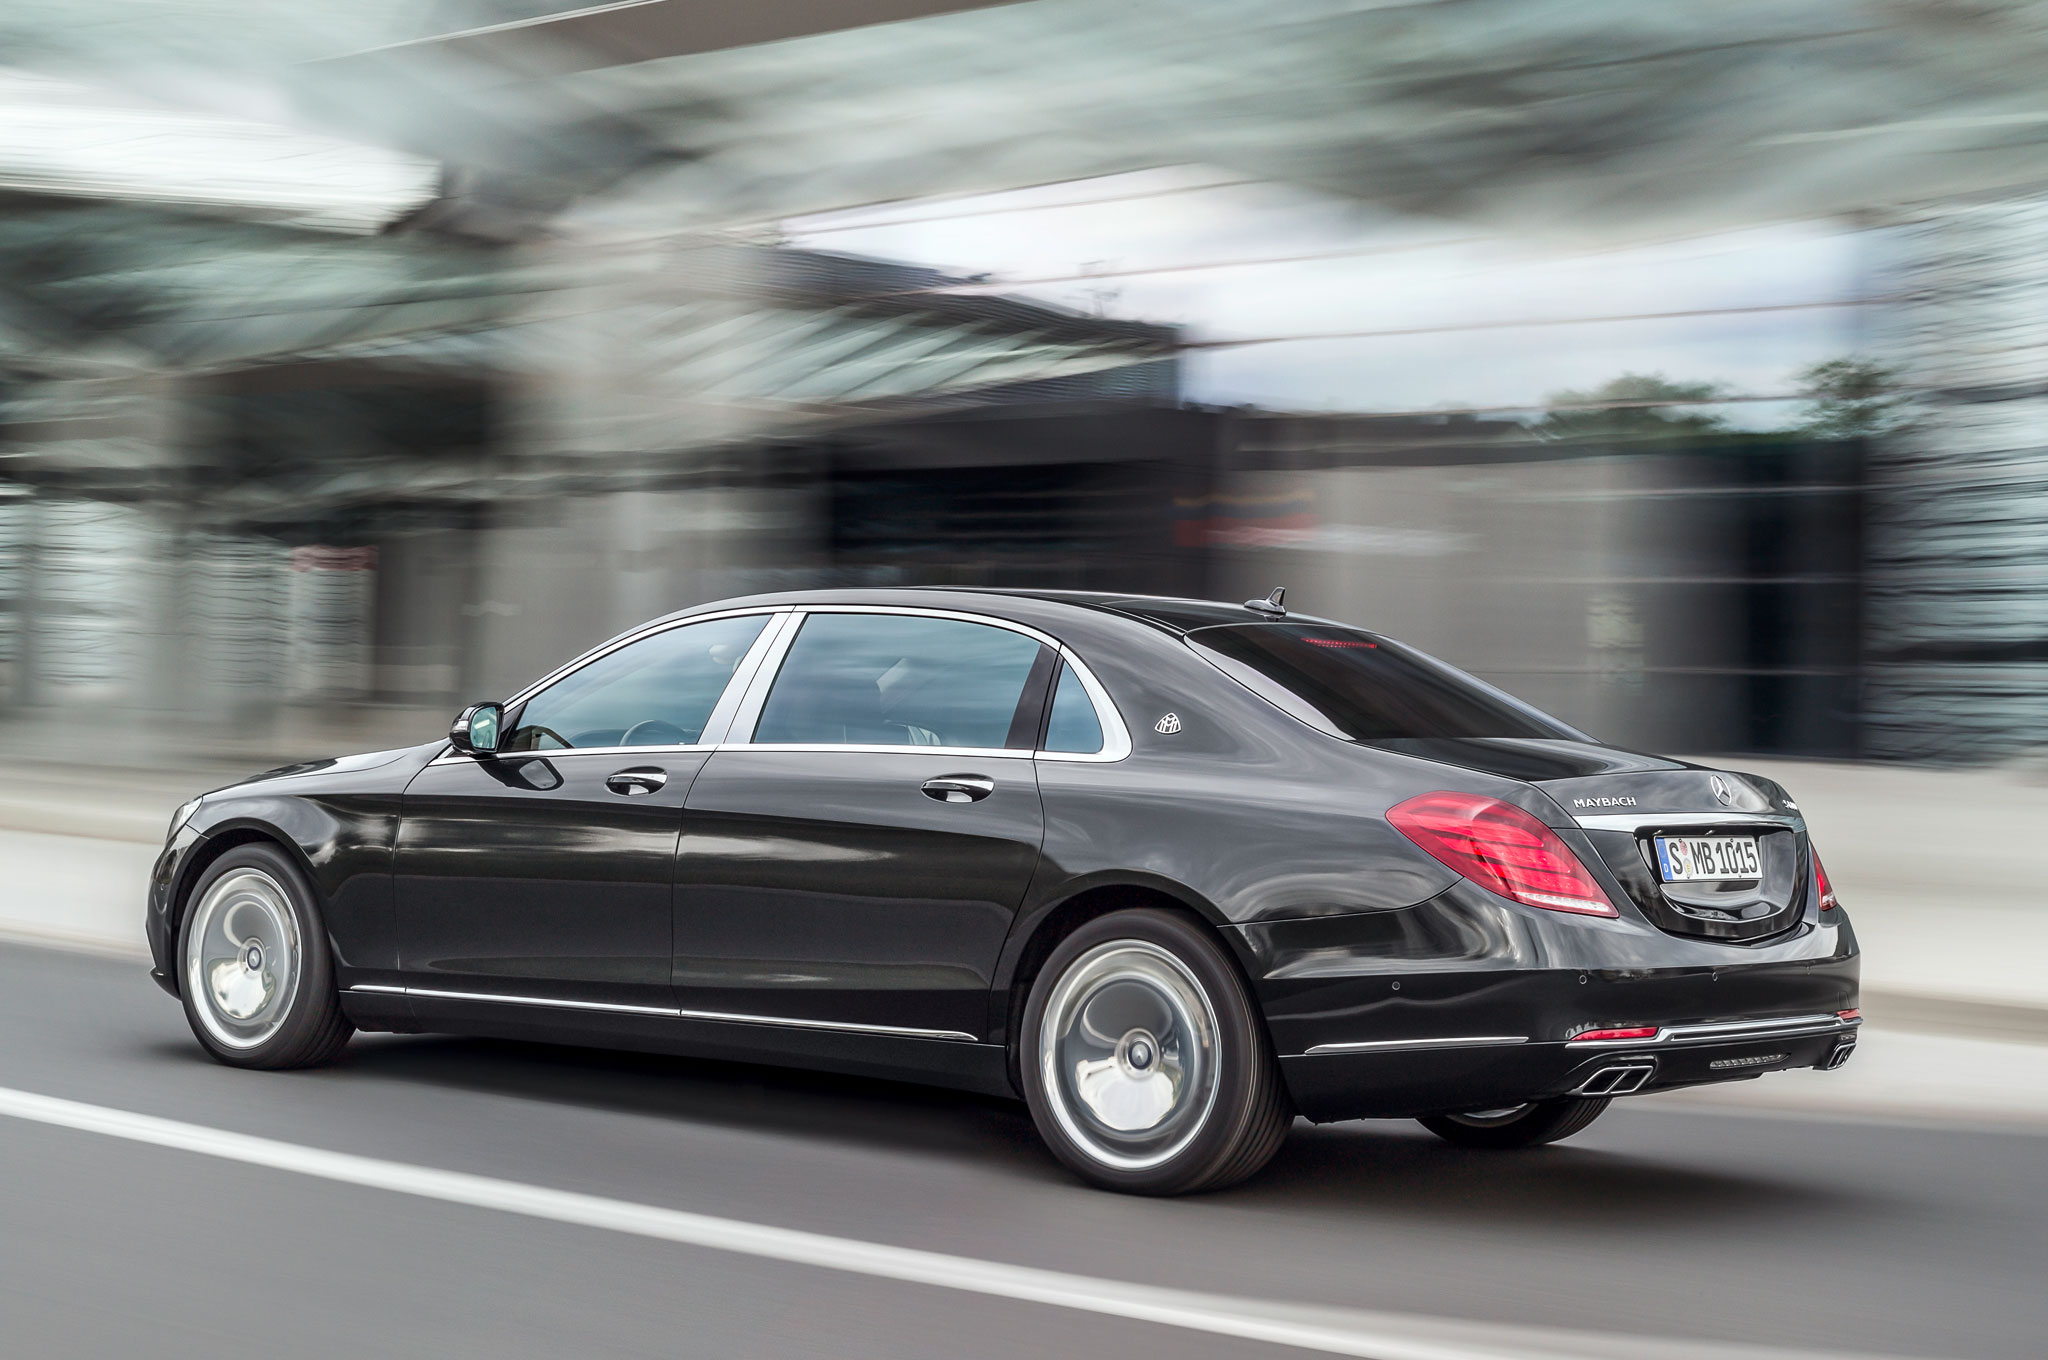 https://st.automobilemag.com/uploads/sites/11/2014/11/2016-Mercedes-Maybach-S600-rear-three-quarter-in-motion-1.jpg